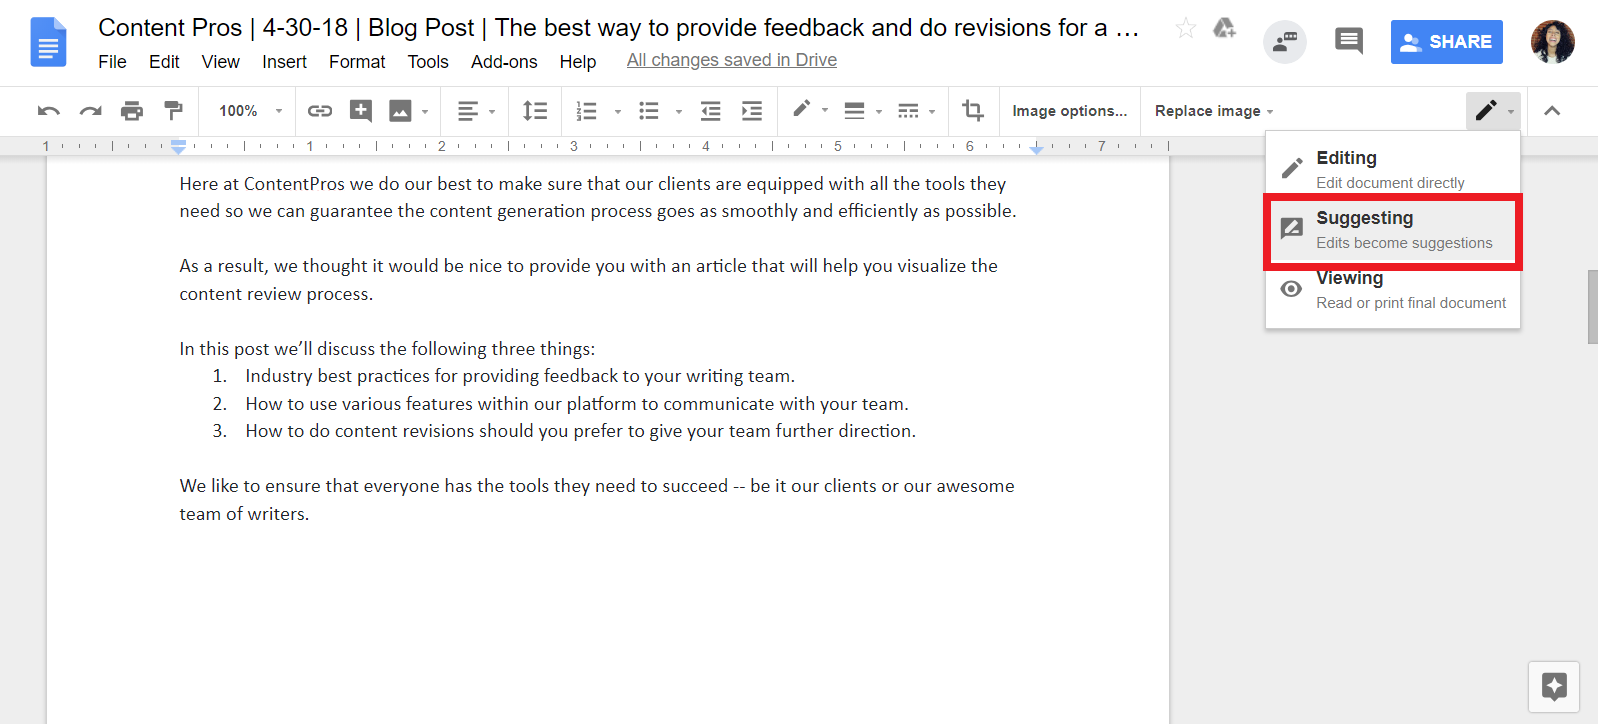 Best Practices for Providing Feedback and Doing Revisions with Content Pros